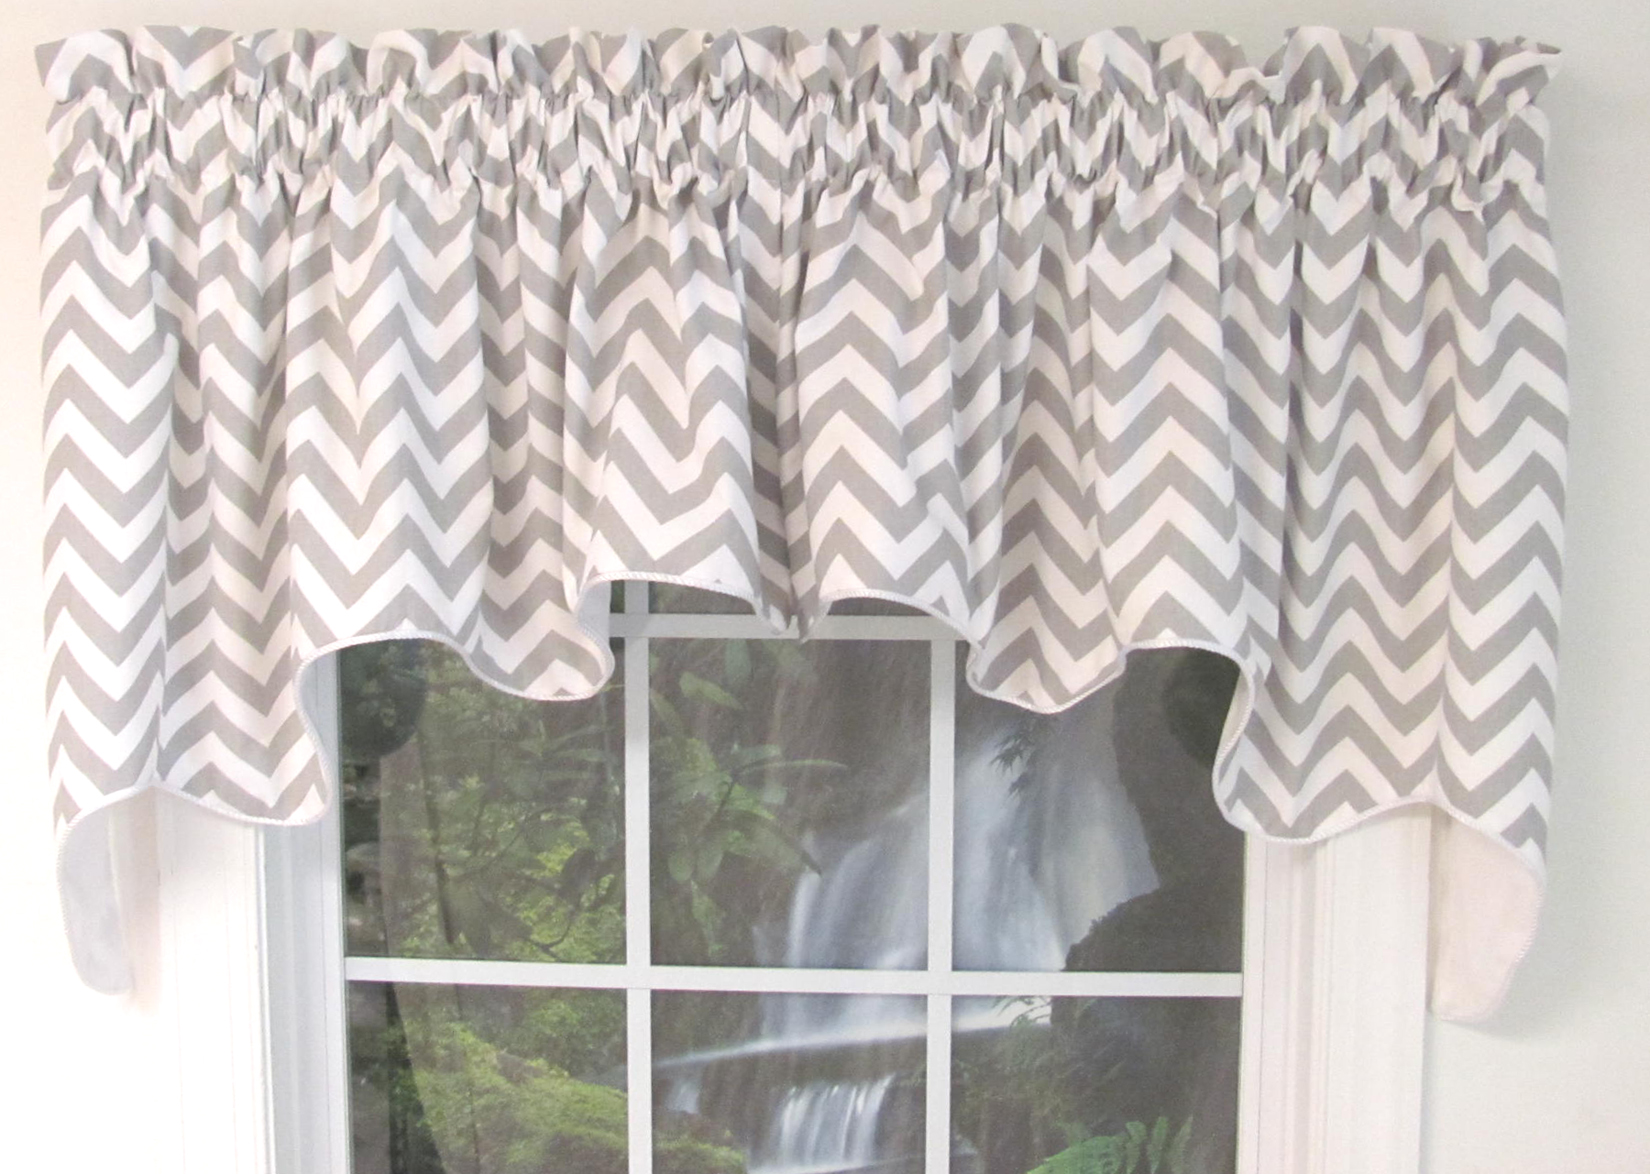 pair blue curtain ascot x wide valance valances jewel window treatment p waverly tailored by rhapsody midnight